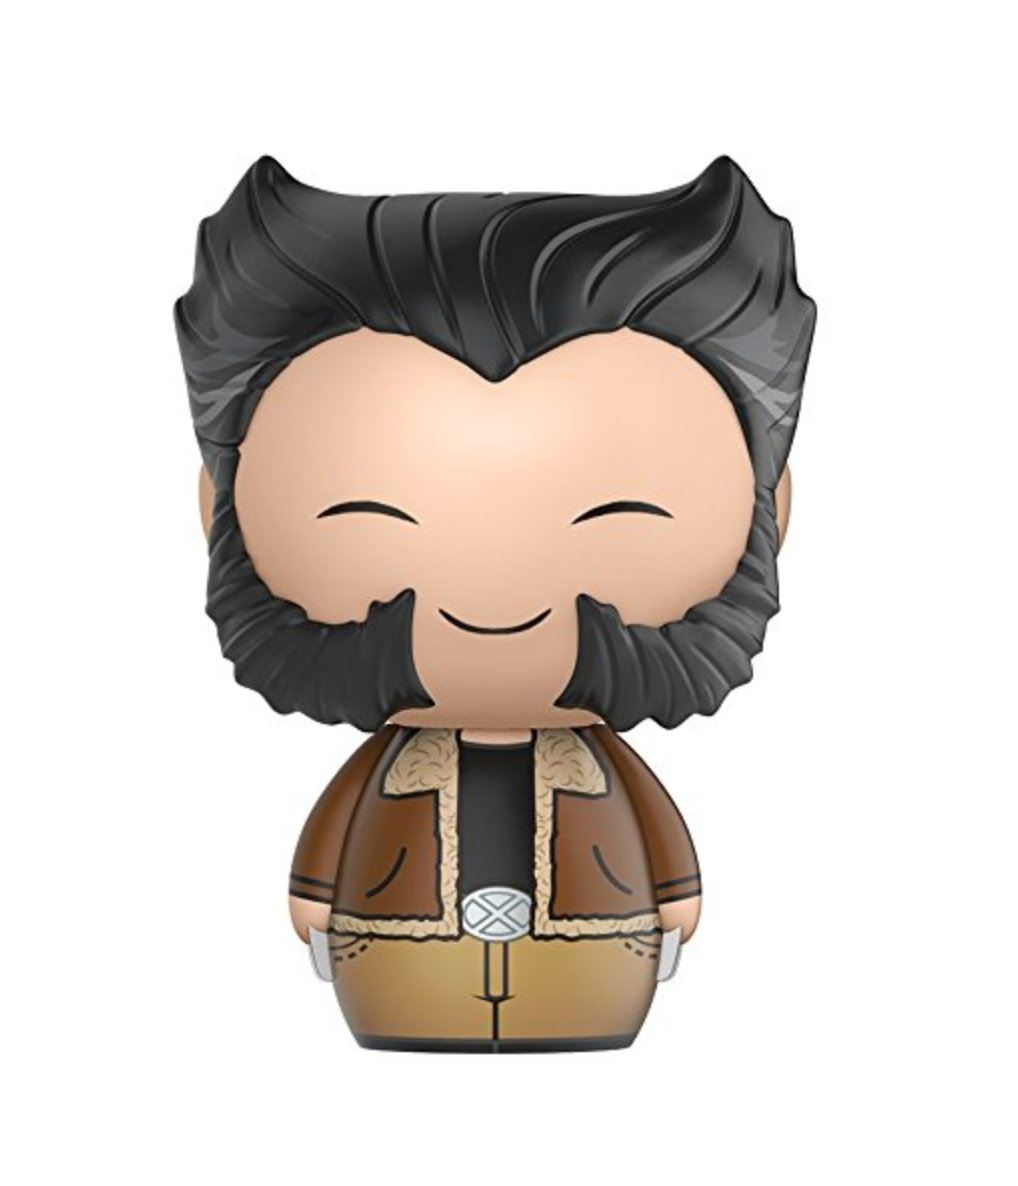 Funko Dorbz: X-Men Logan with Jacket Toy Figure